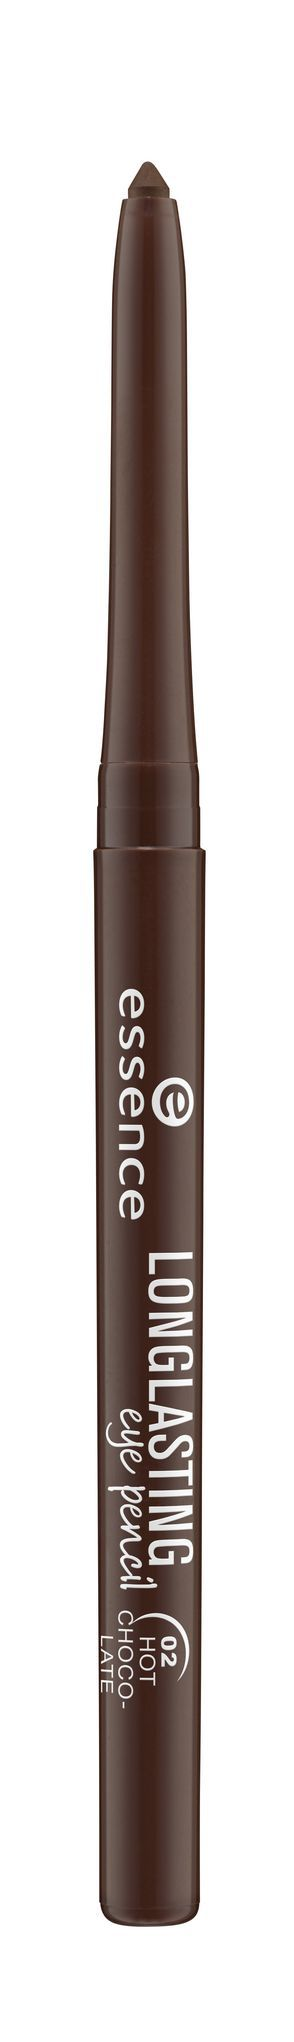 essence long-lasting eye pencil 02-brown